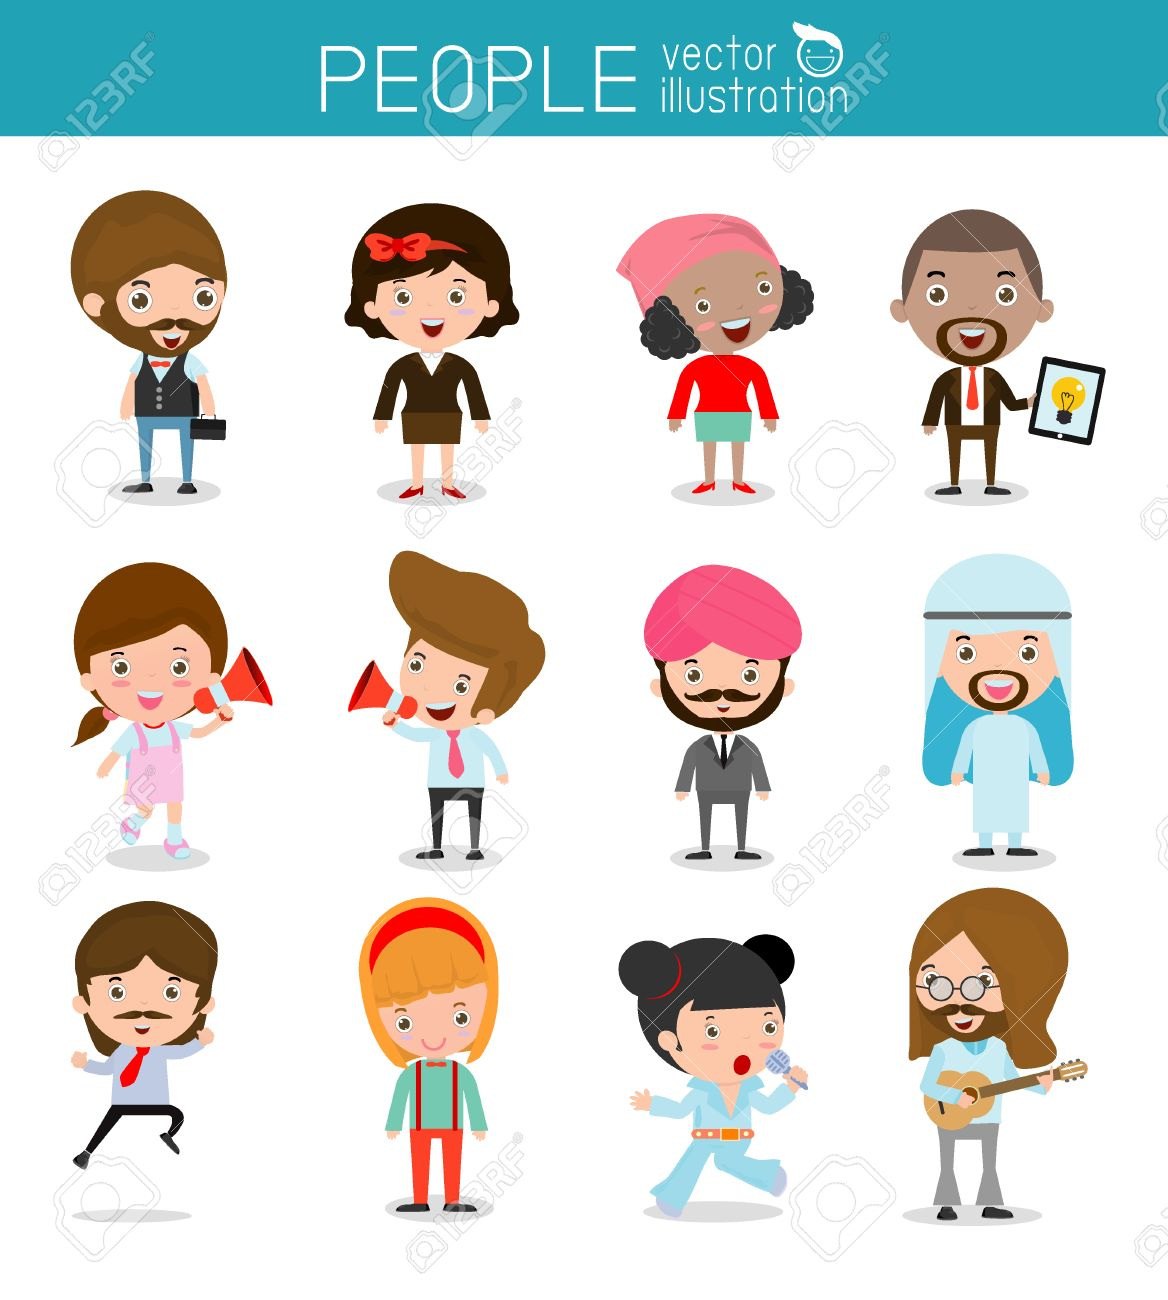 people characters, large group of people, Set of diverse business people in flat style isolated on white background, Different nationalities and dress styles .flat modern design - 49099731